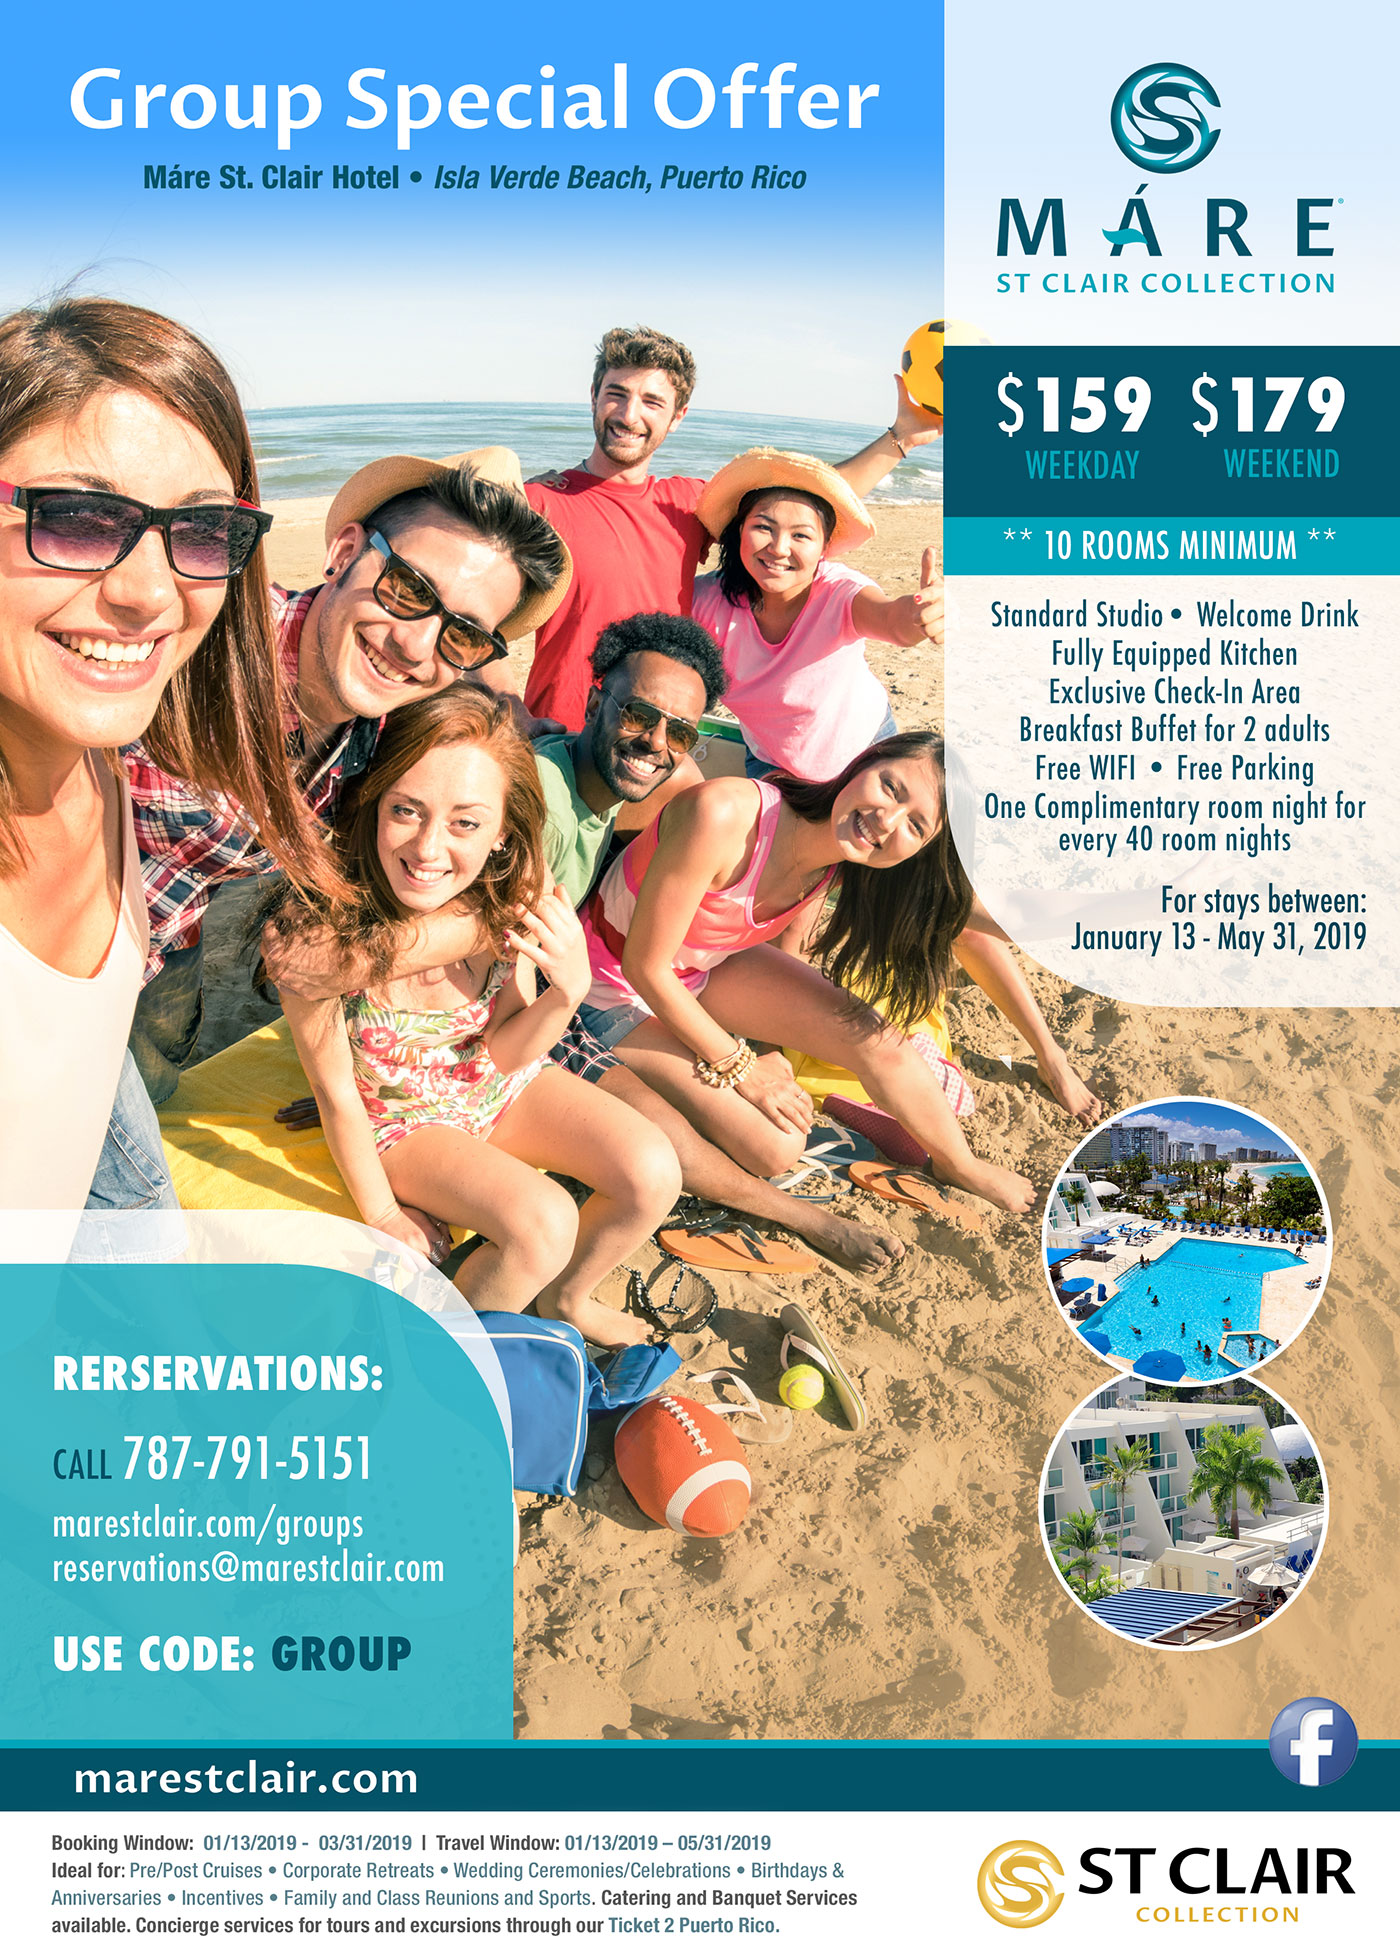 Mare St. Clair Hotel Group Special Rate Isla Verde Beach Puerto Rico